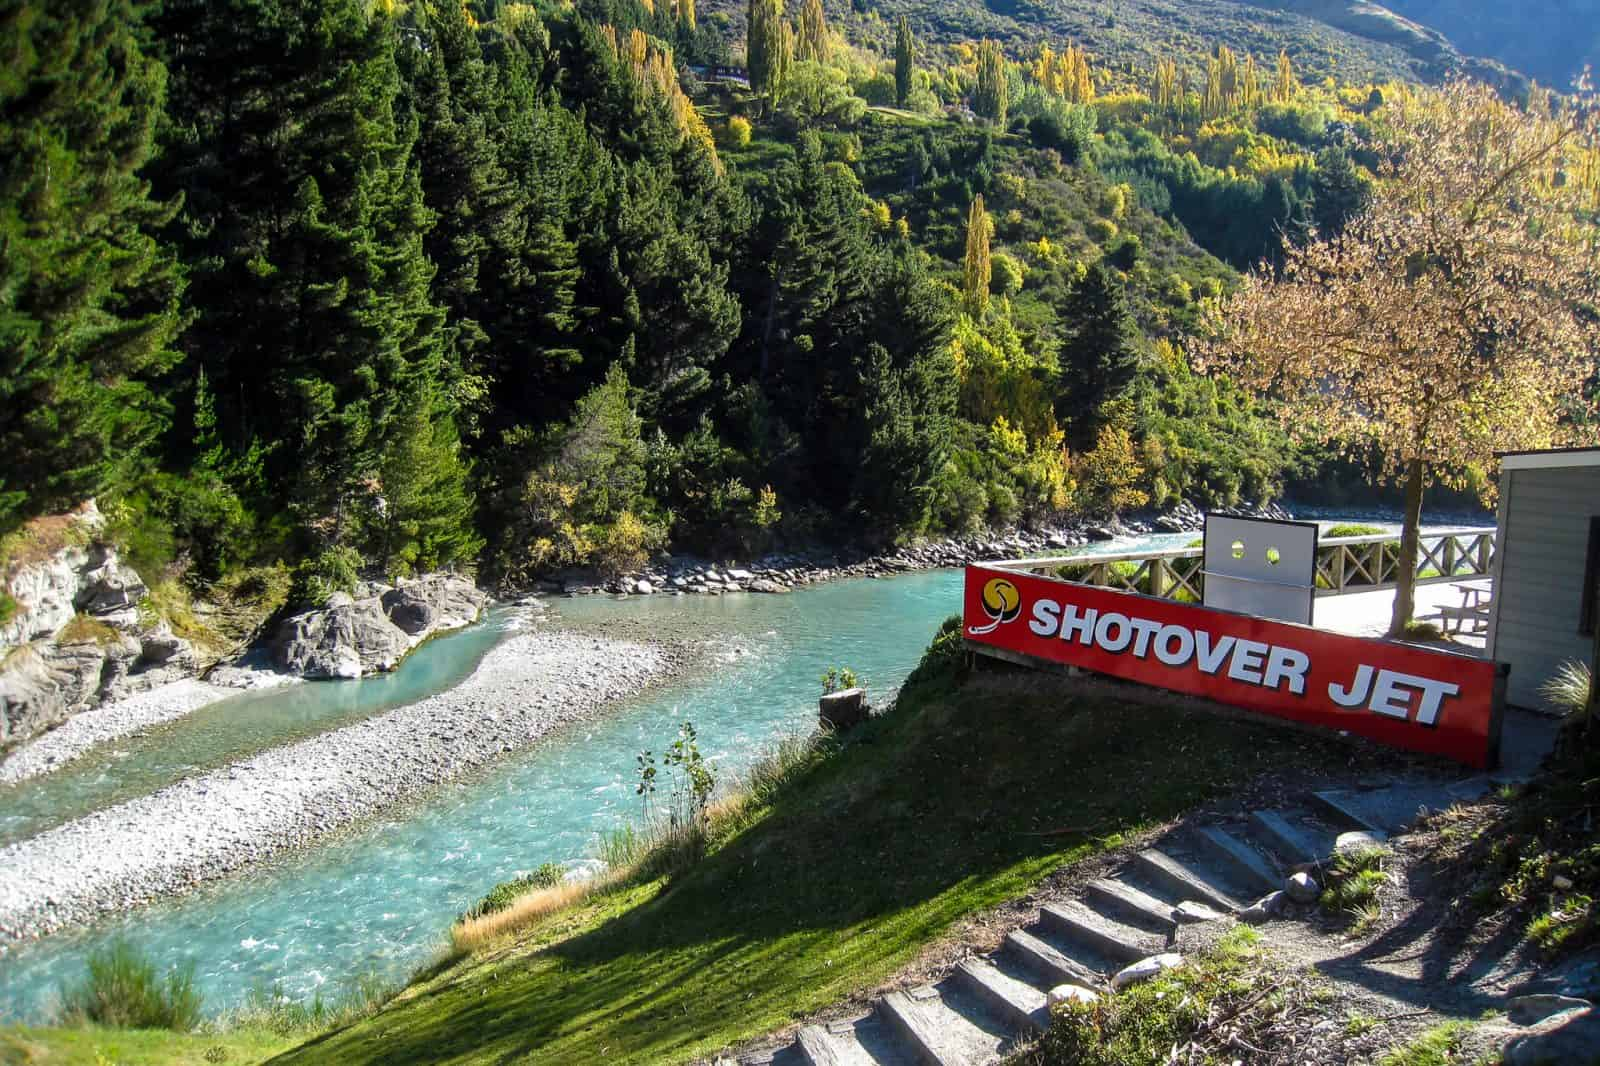 Jetboating on the Shotover River in Queenstown, New Zealand